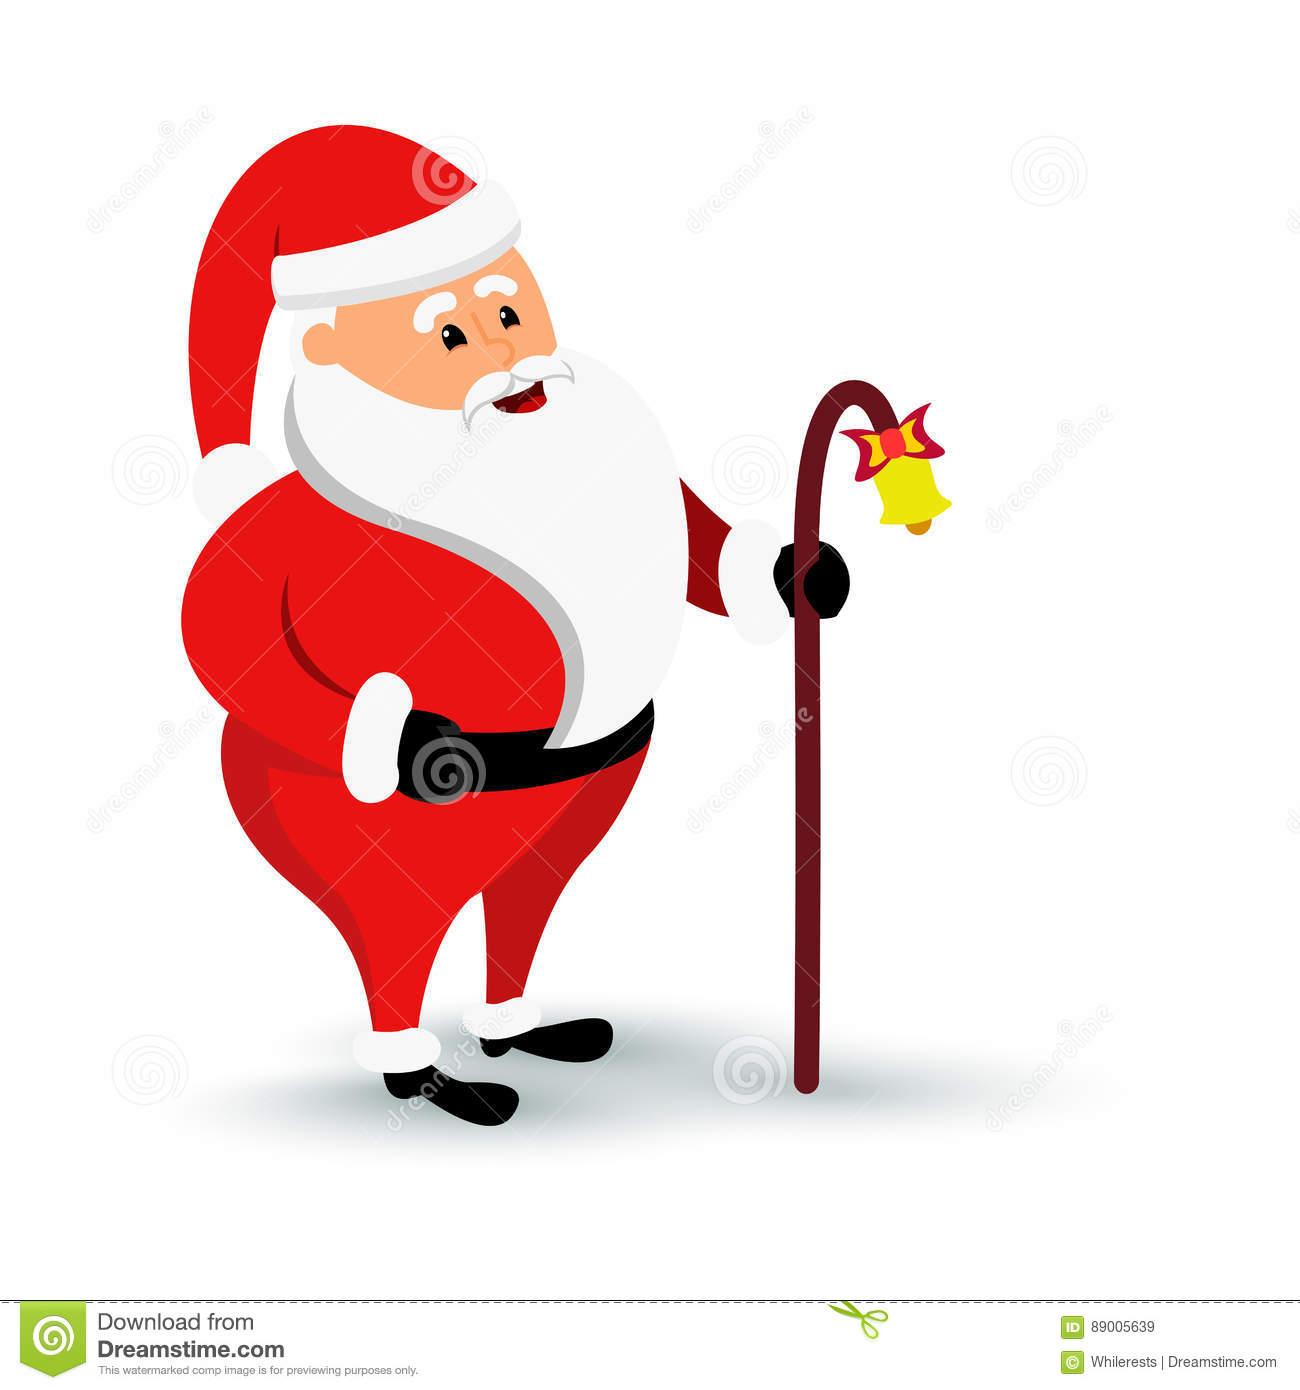 Christmas smiling Santa Claus character is coming. Cartoon bearded man in festive costume Santa Claus with baculus and